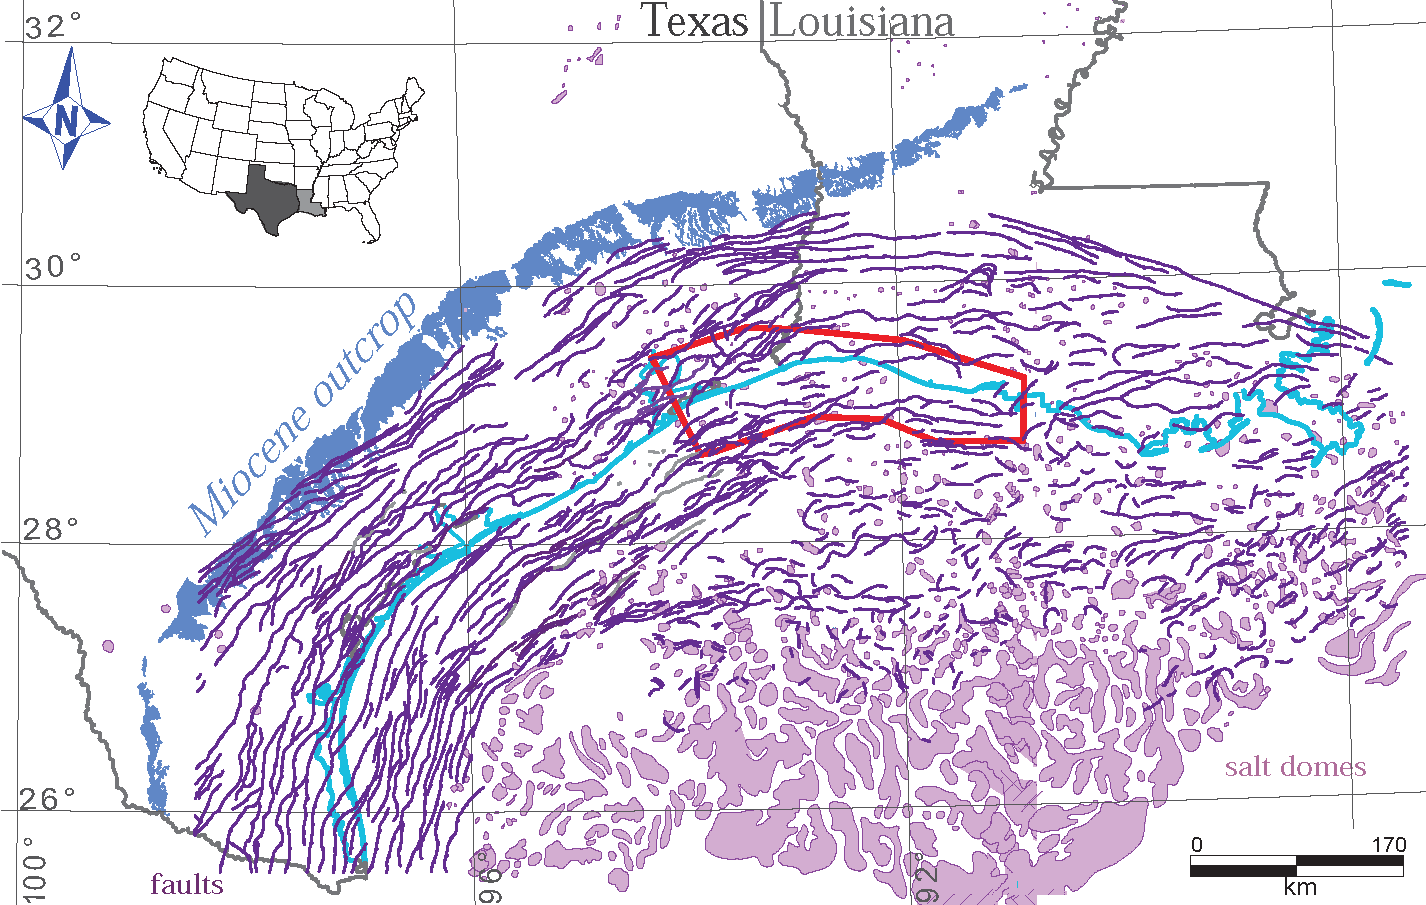 Early Miocene deltaic shorelines offshore Texas/Louisiana